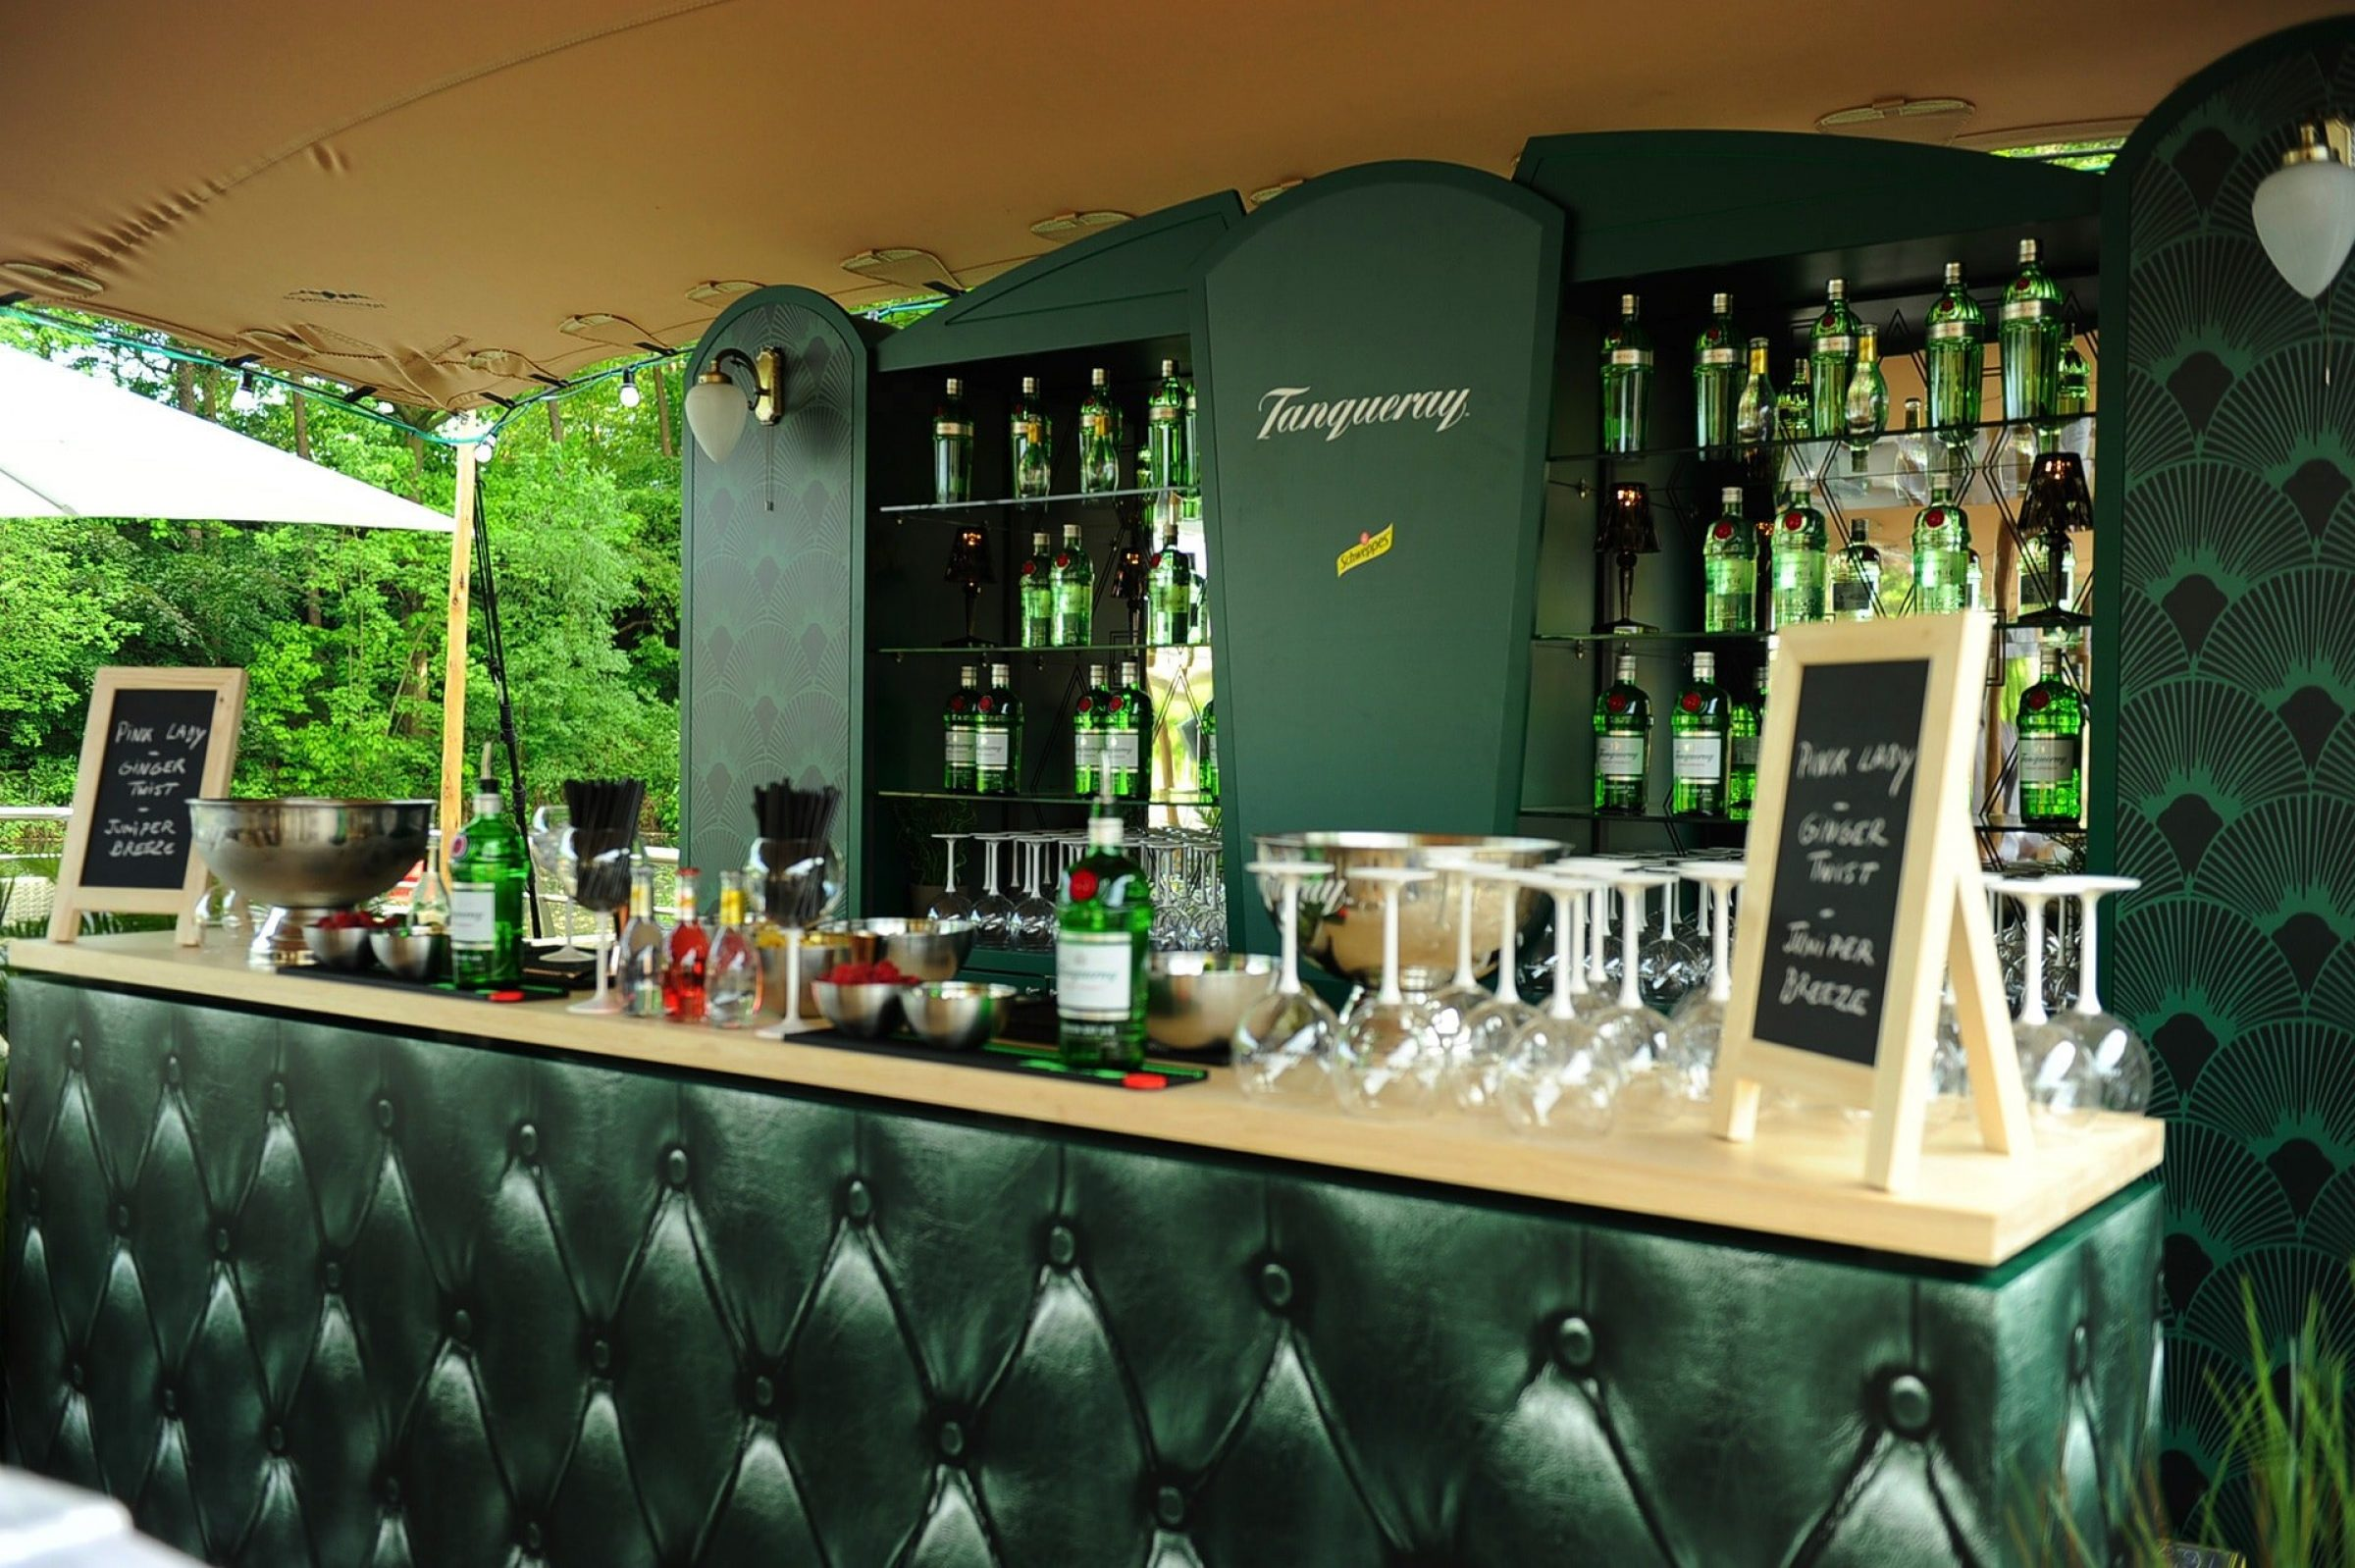 Fast Forward Evenementenbureau Product Sampling Tanqueray P1Ak0Ucr6319Fbp7R19Hj96Sii98